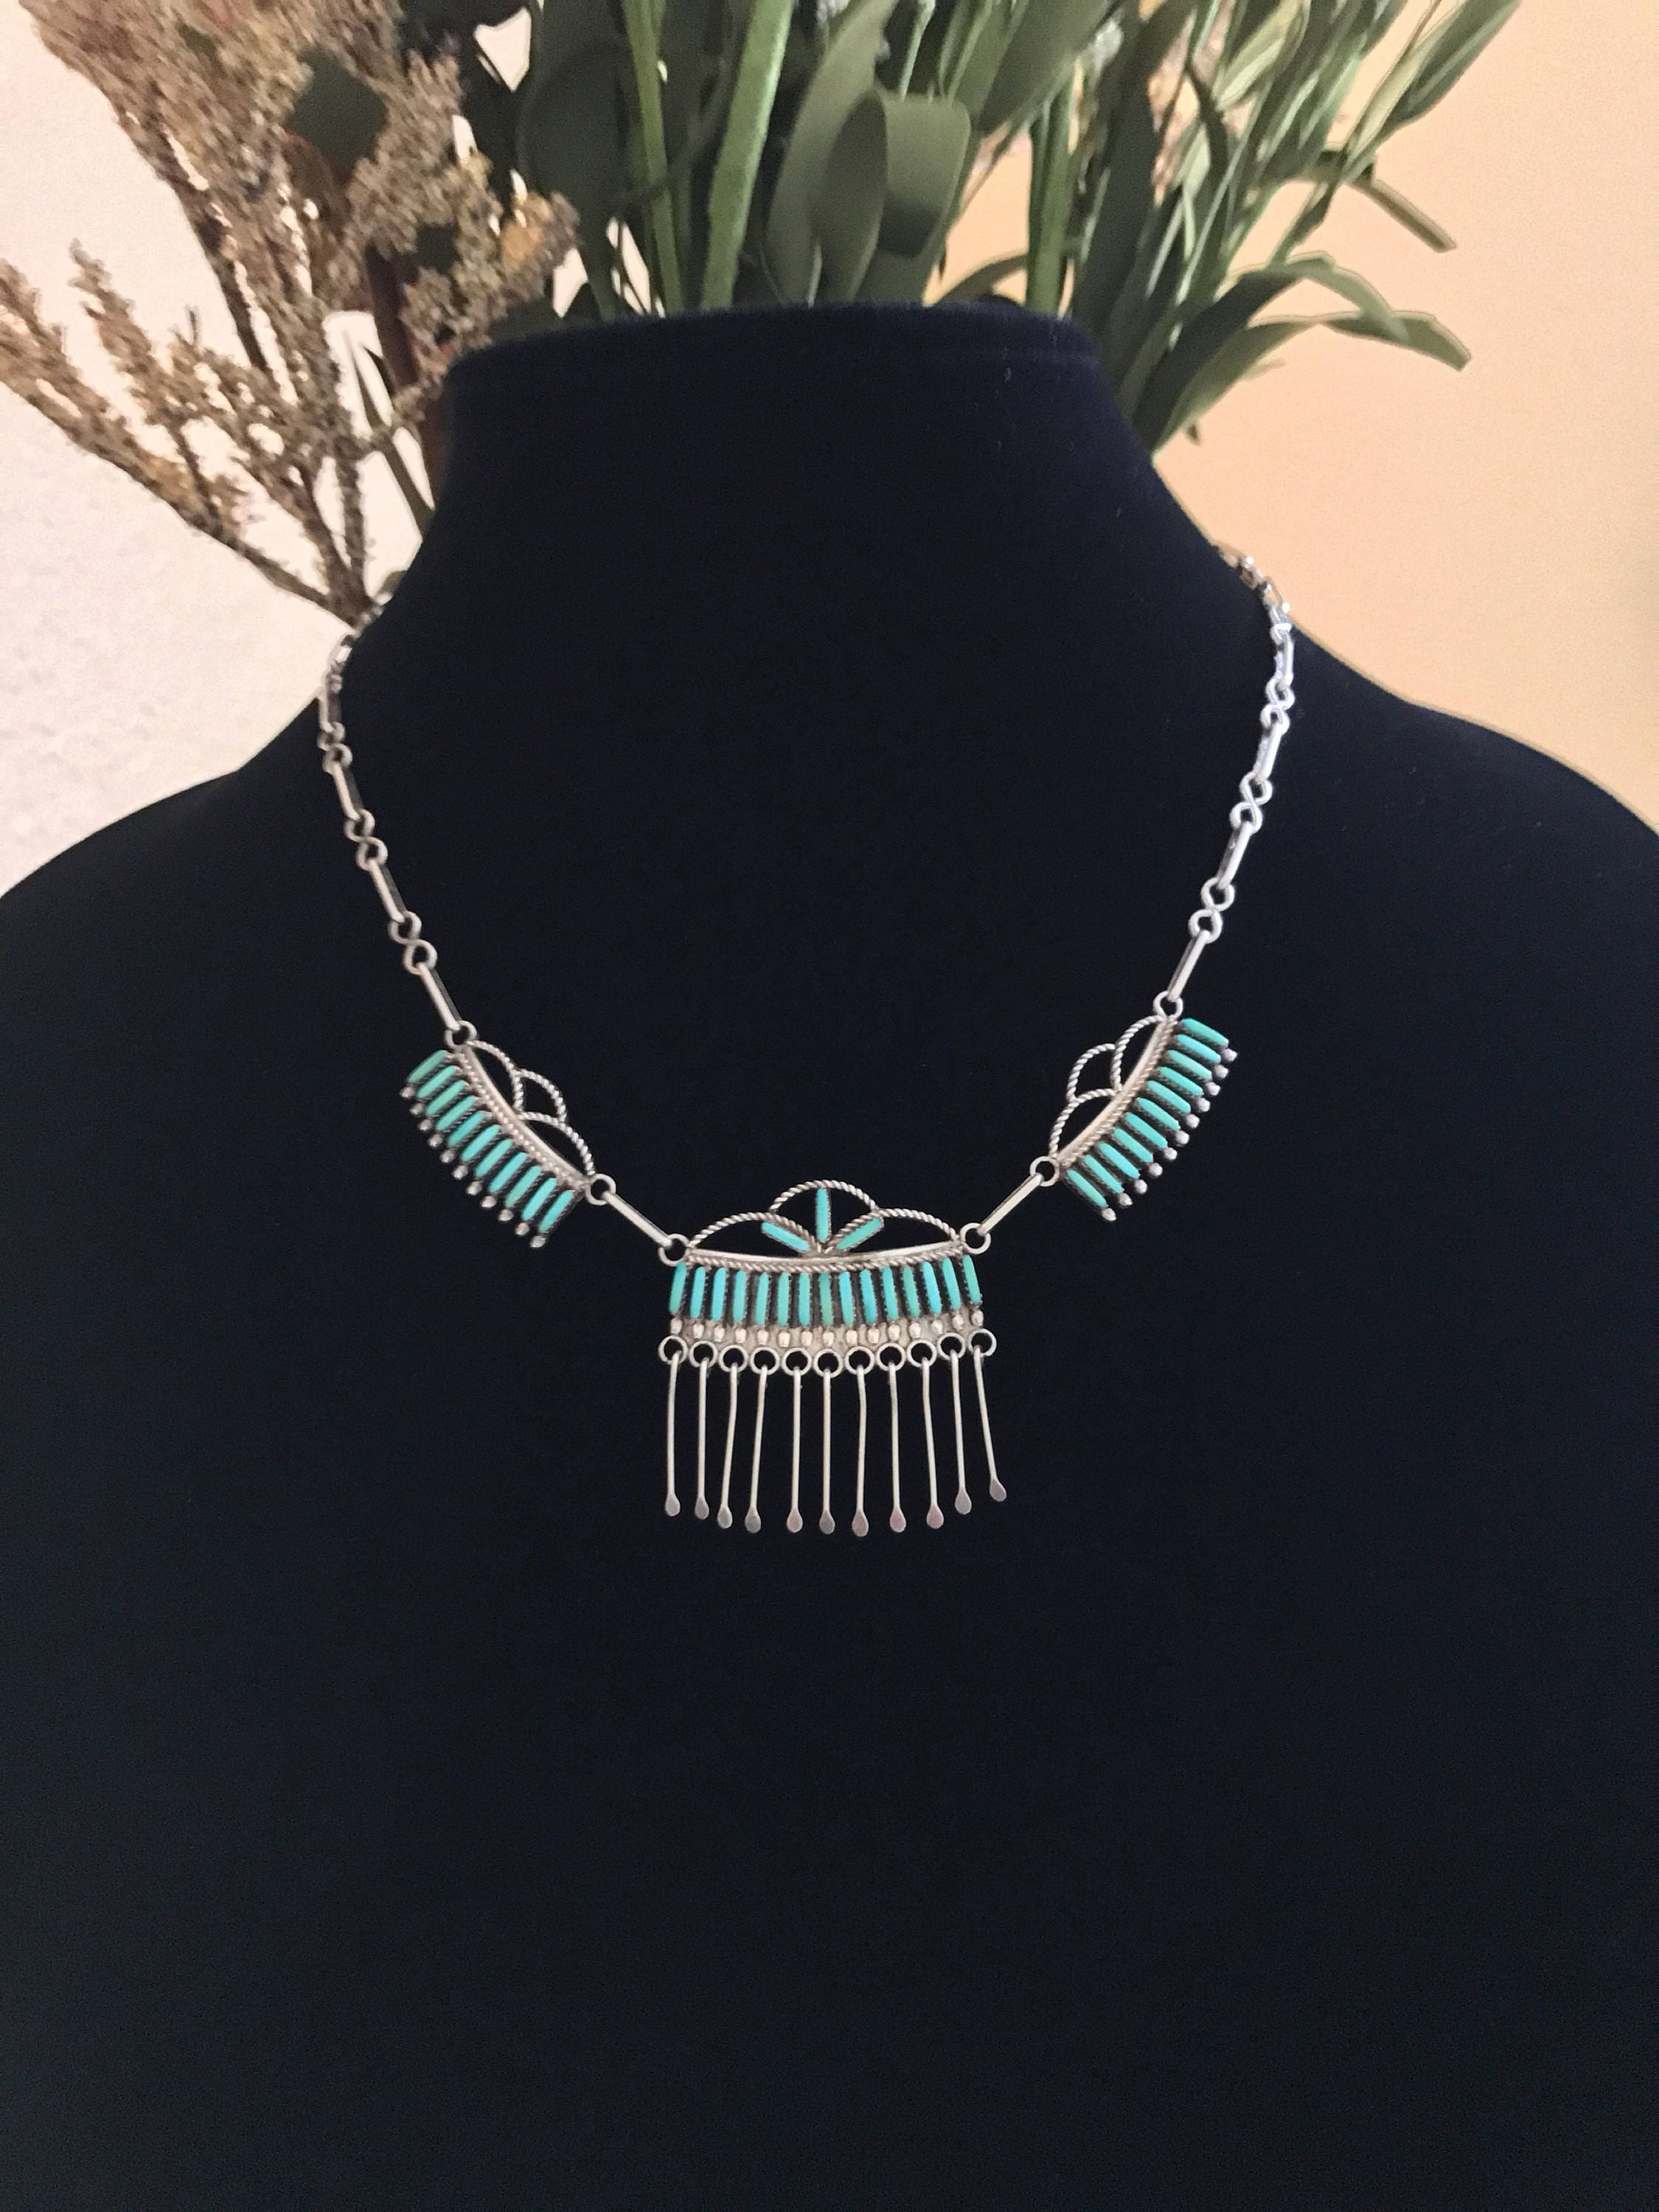 munn pendant auction zuni image llc g r